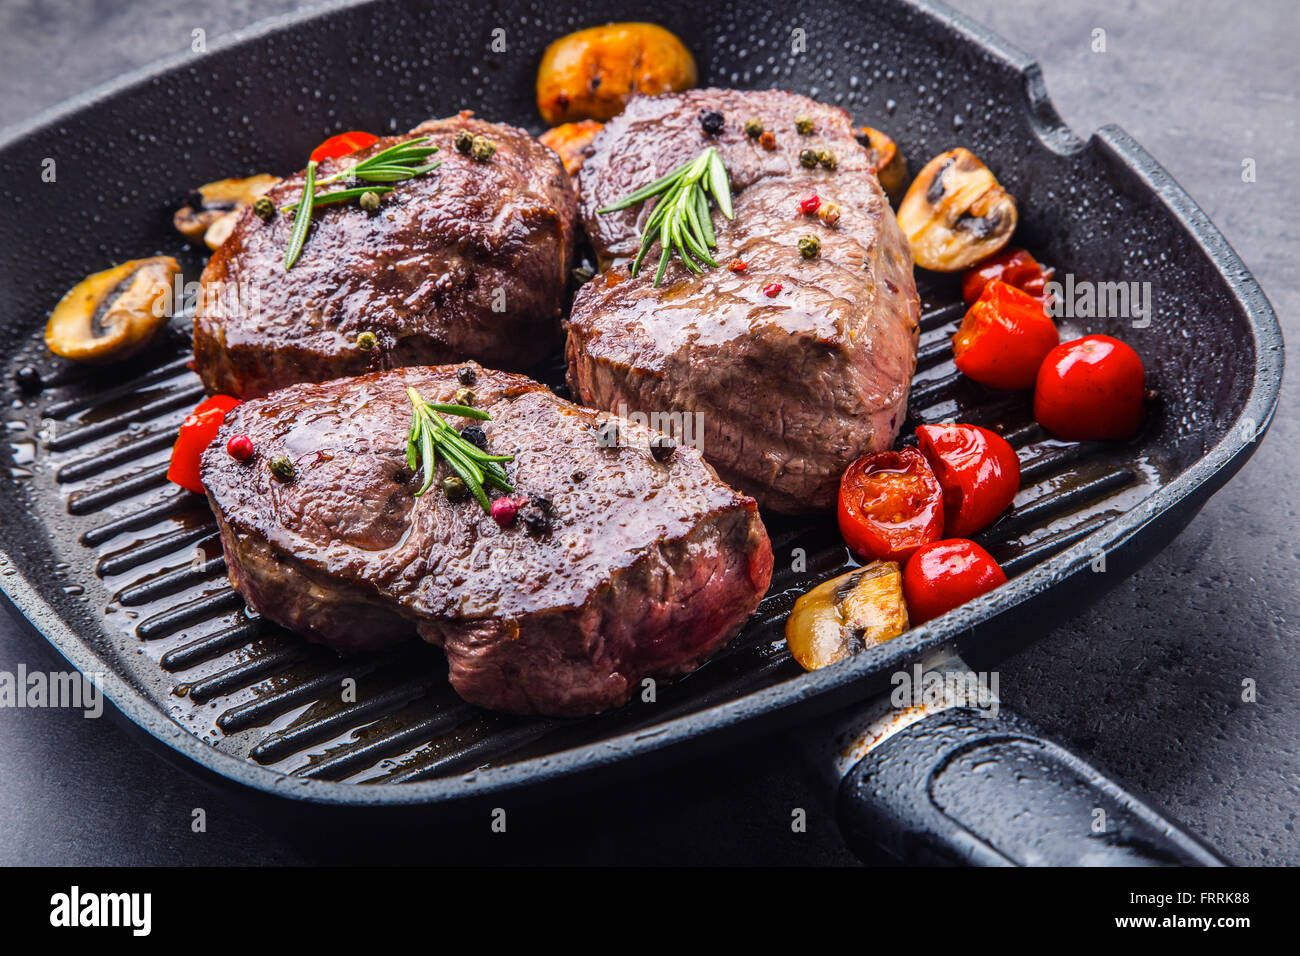 Steak. Grill beef steak. Portions thick beef juicy sirloin steaks on grill teflon pan or granite board. - Stock Image